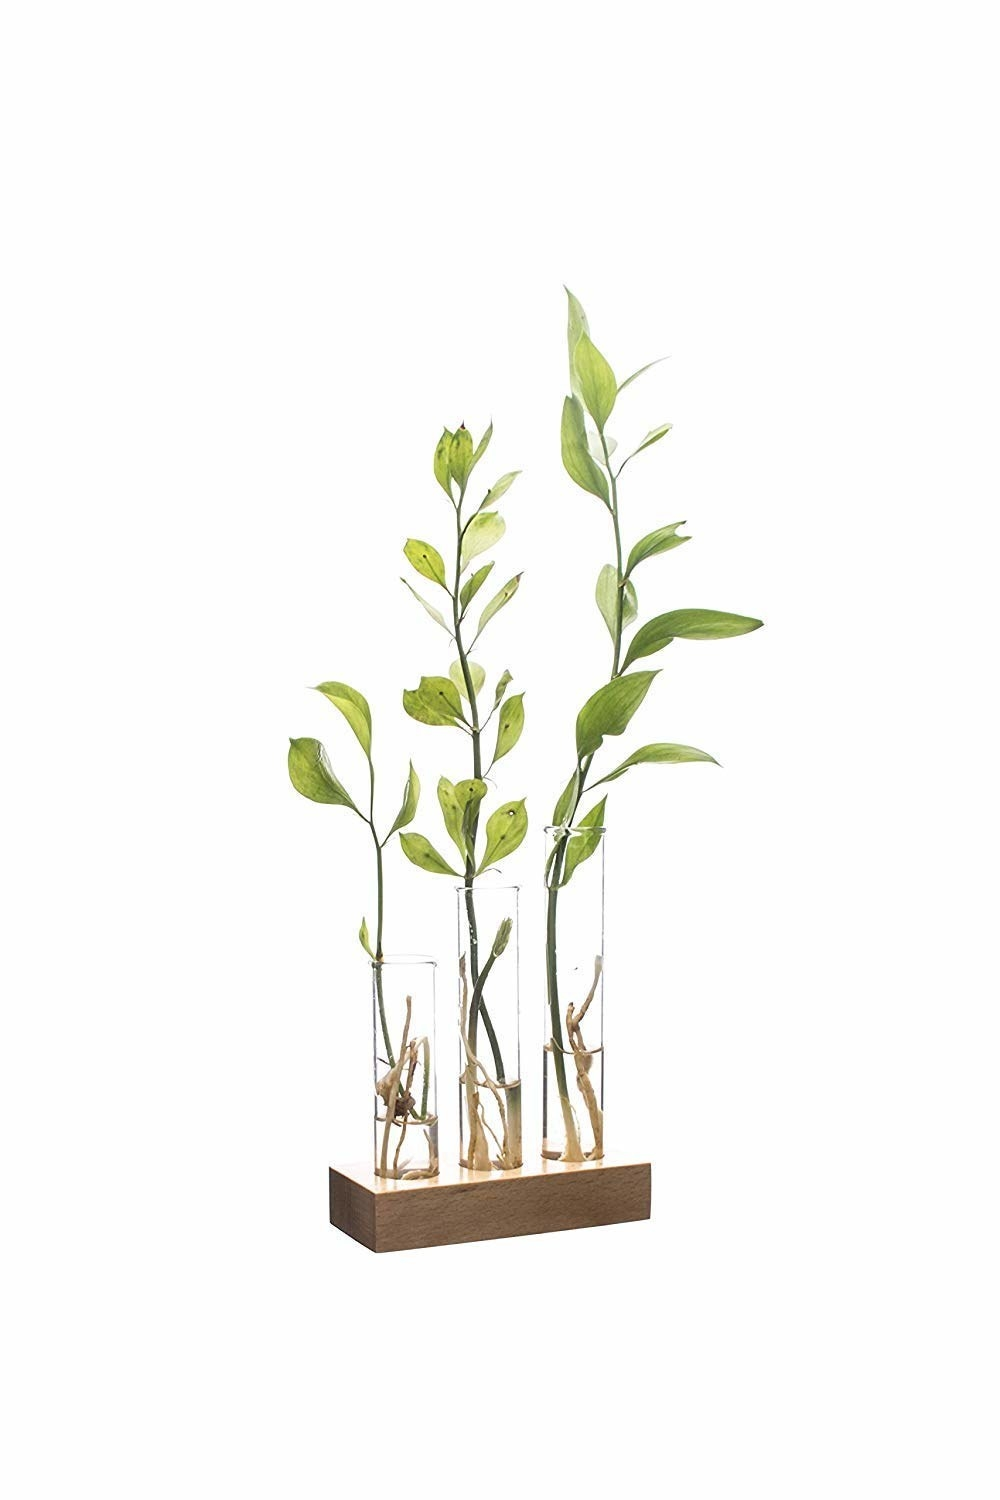 Three small test tube planters with a wooden base